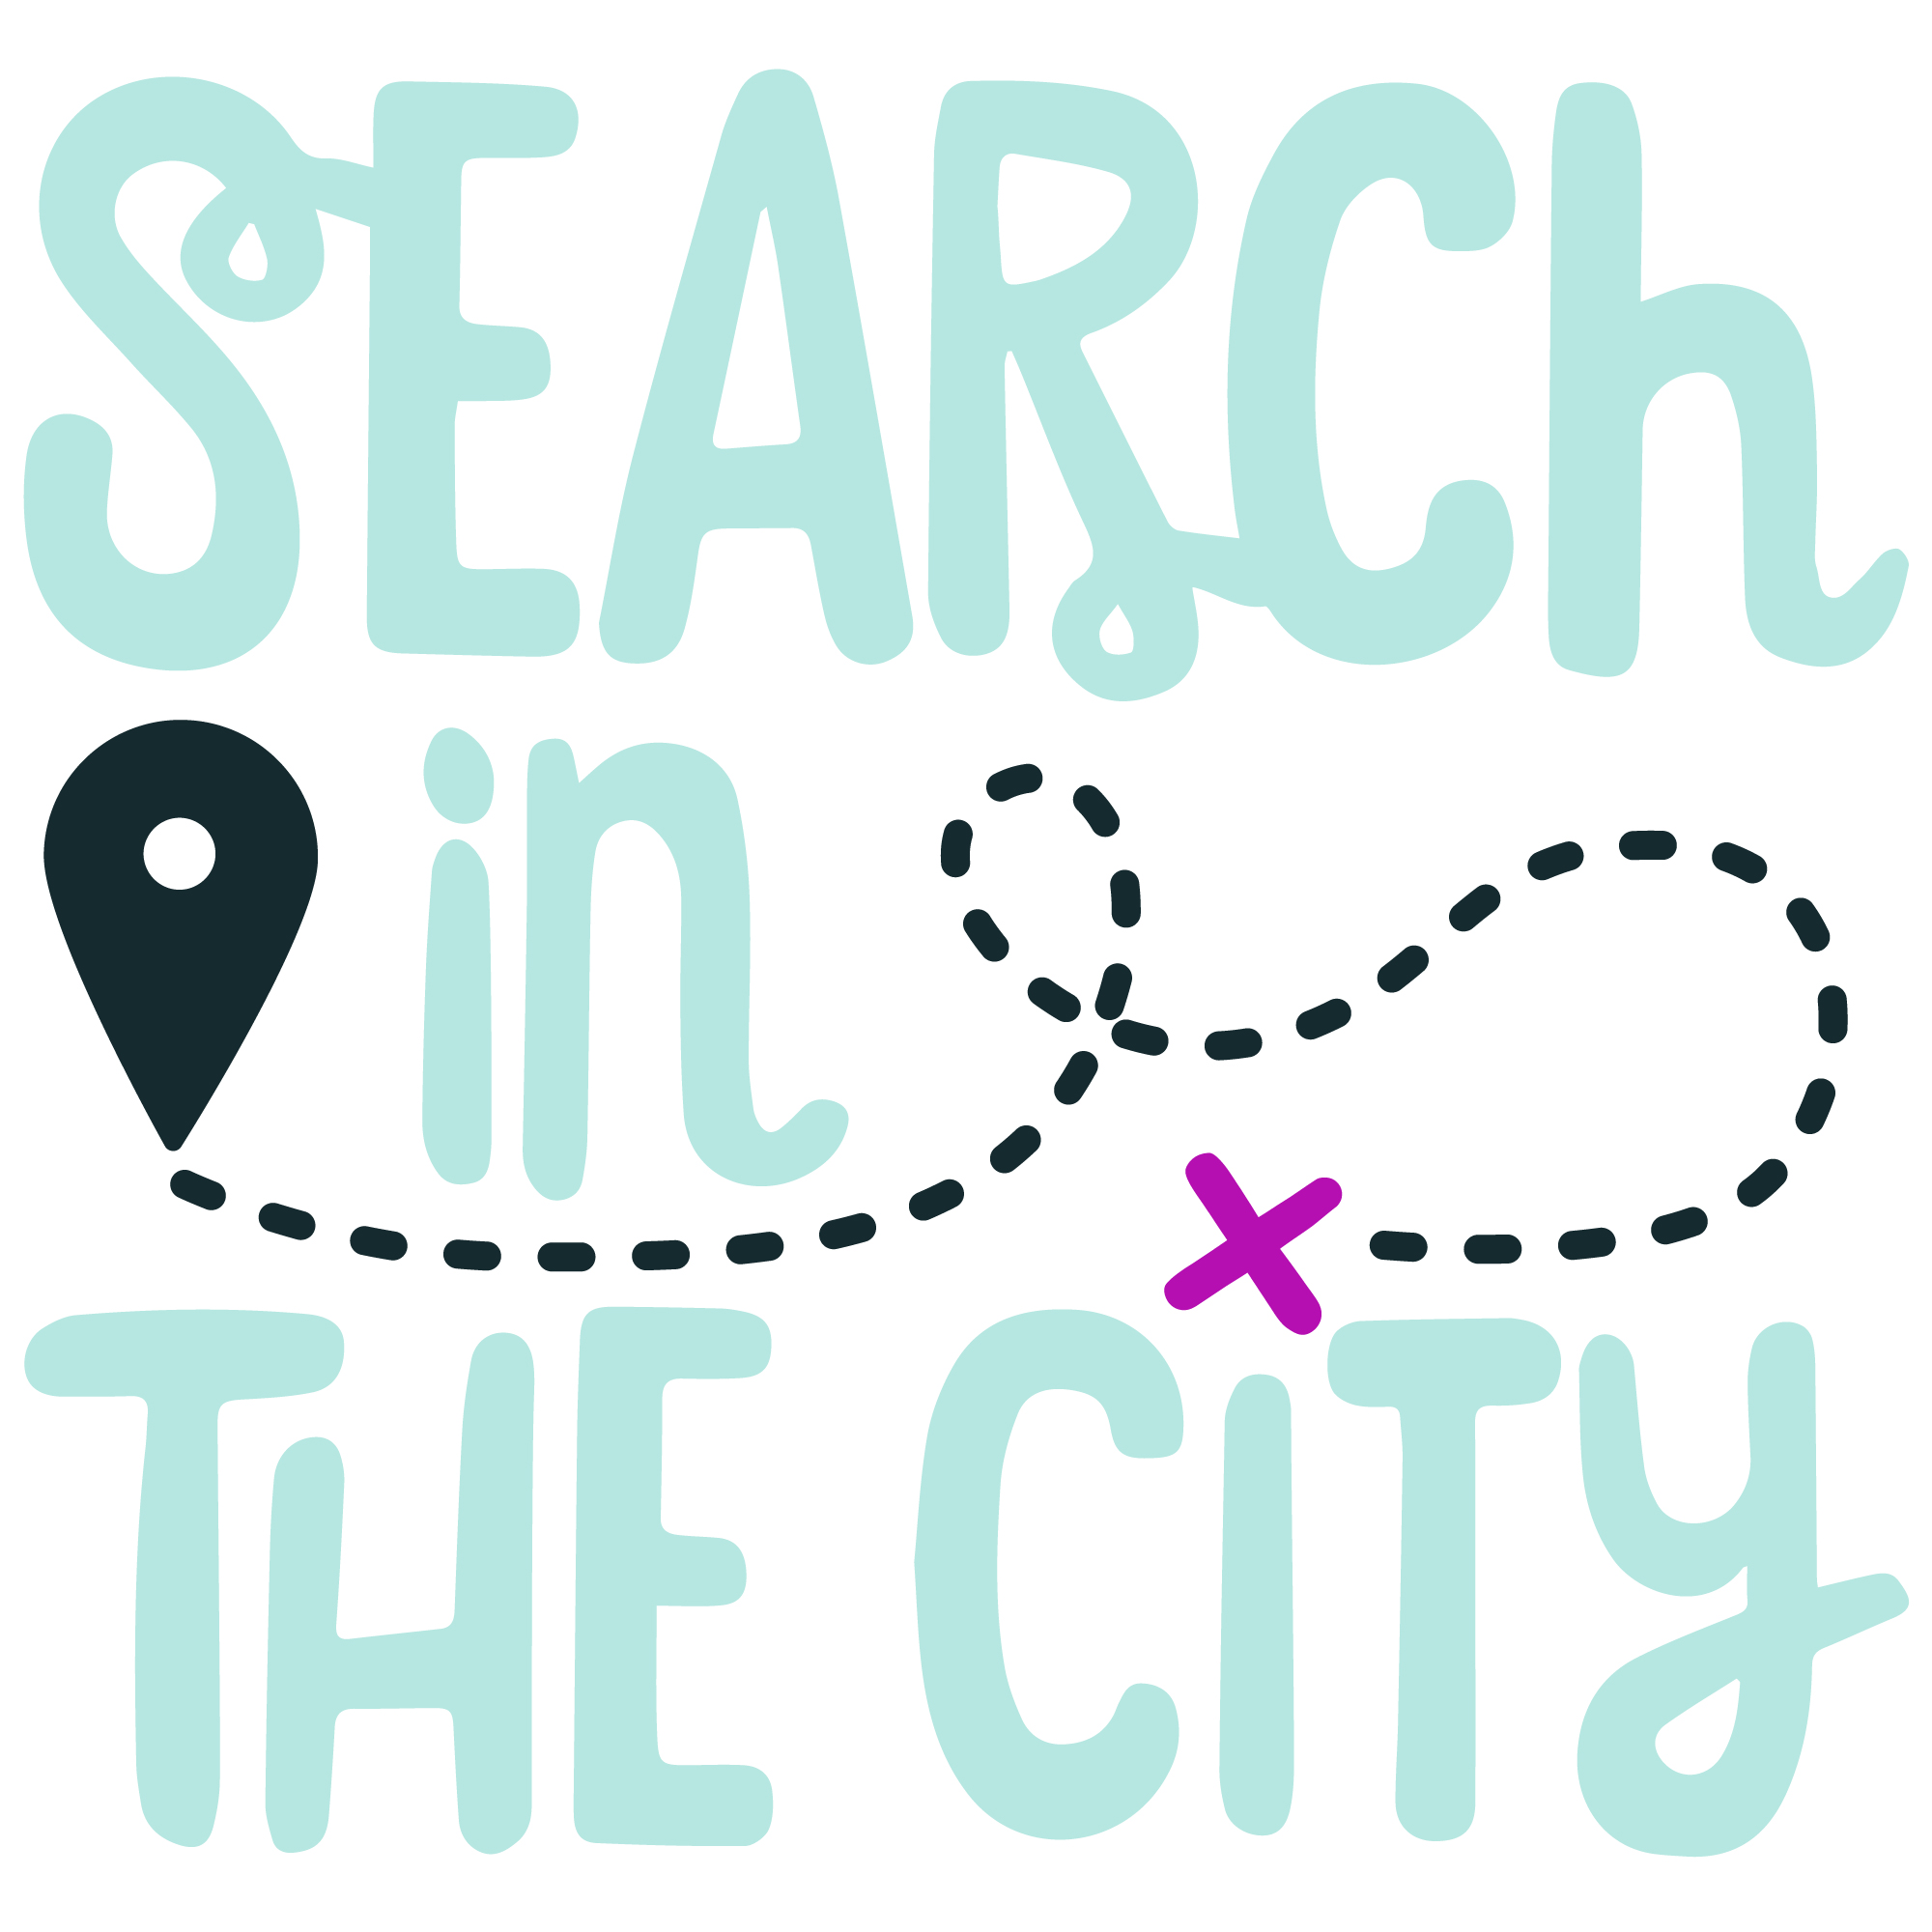 Search in the City